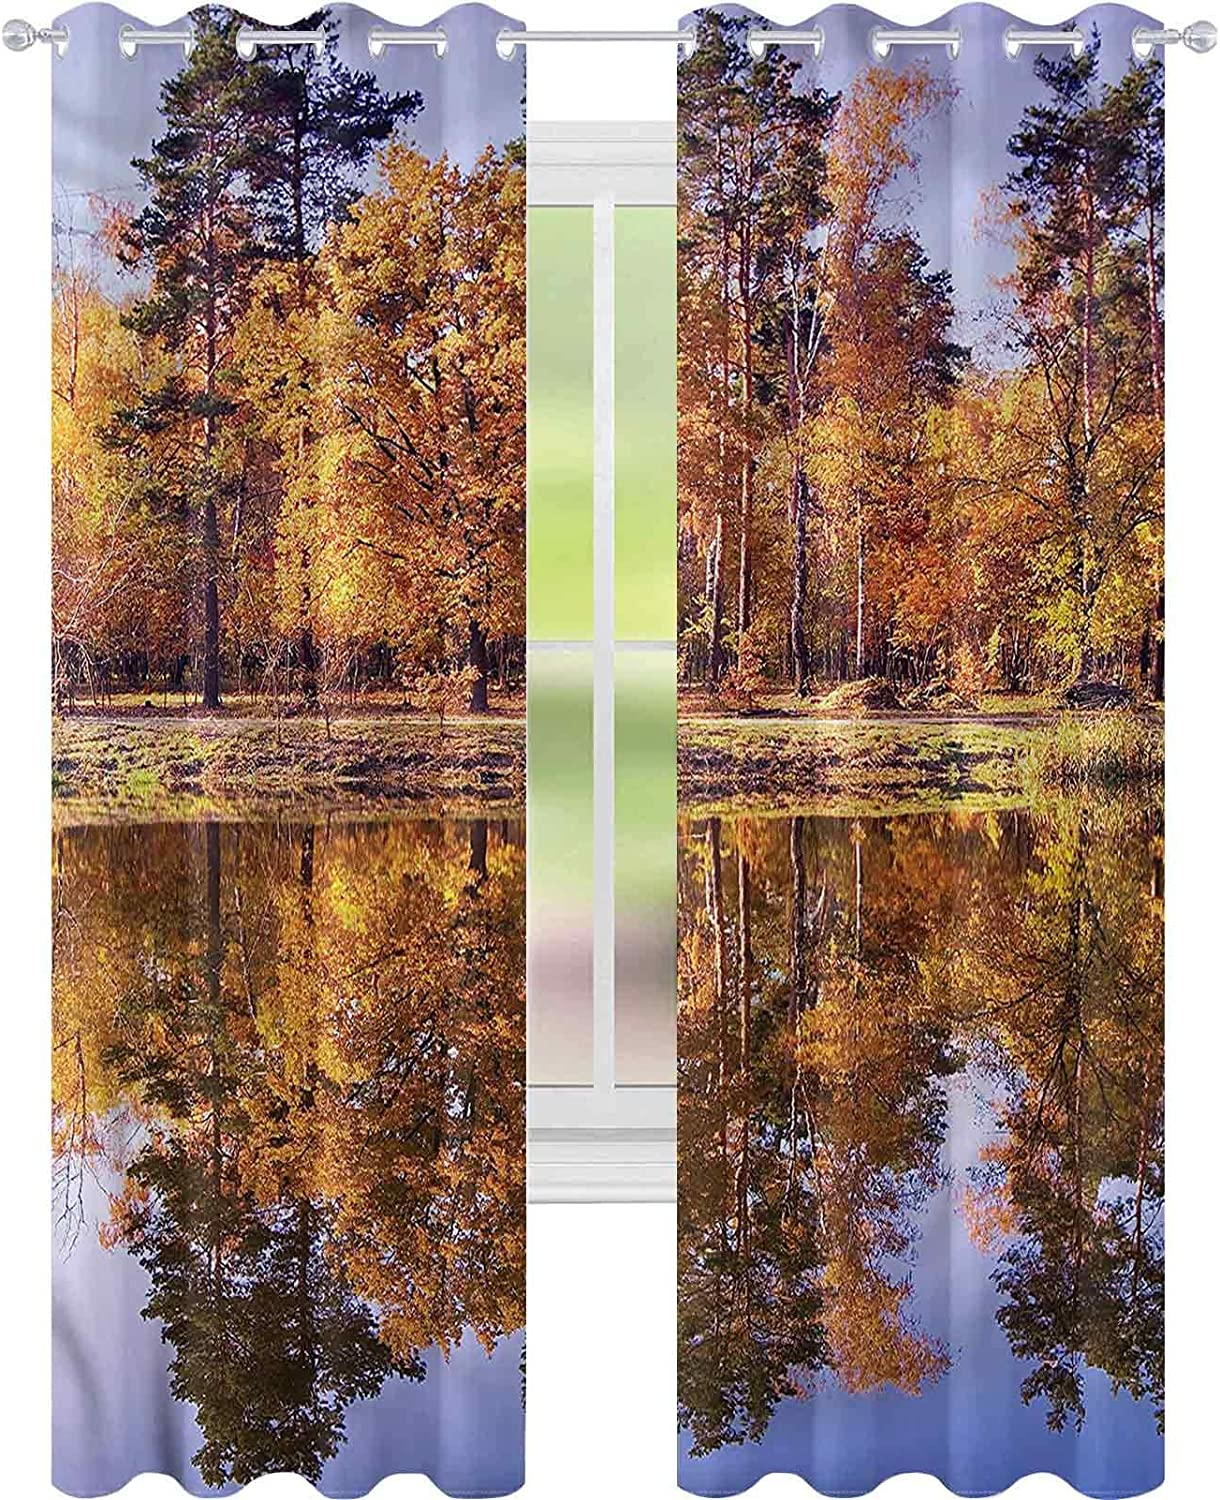 Window Curtain Drape Direct stock discount Landscape Dreamy Scenic Outlet sale feature Forest x L Fall W52